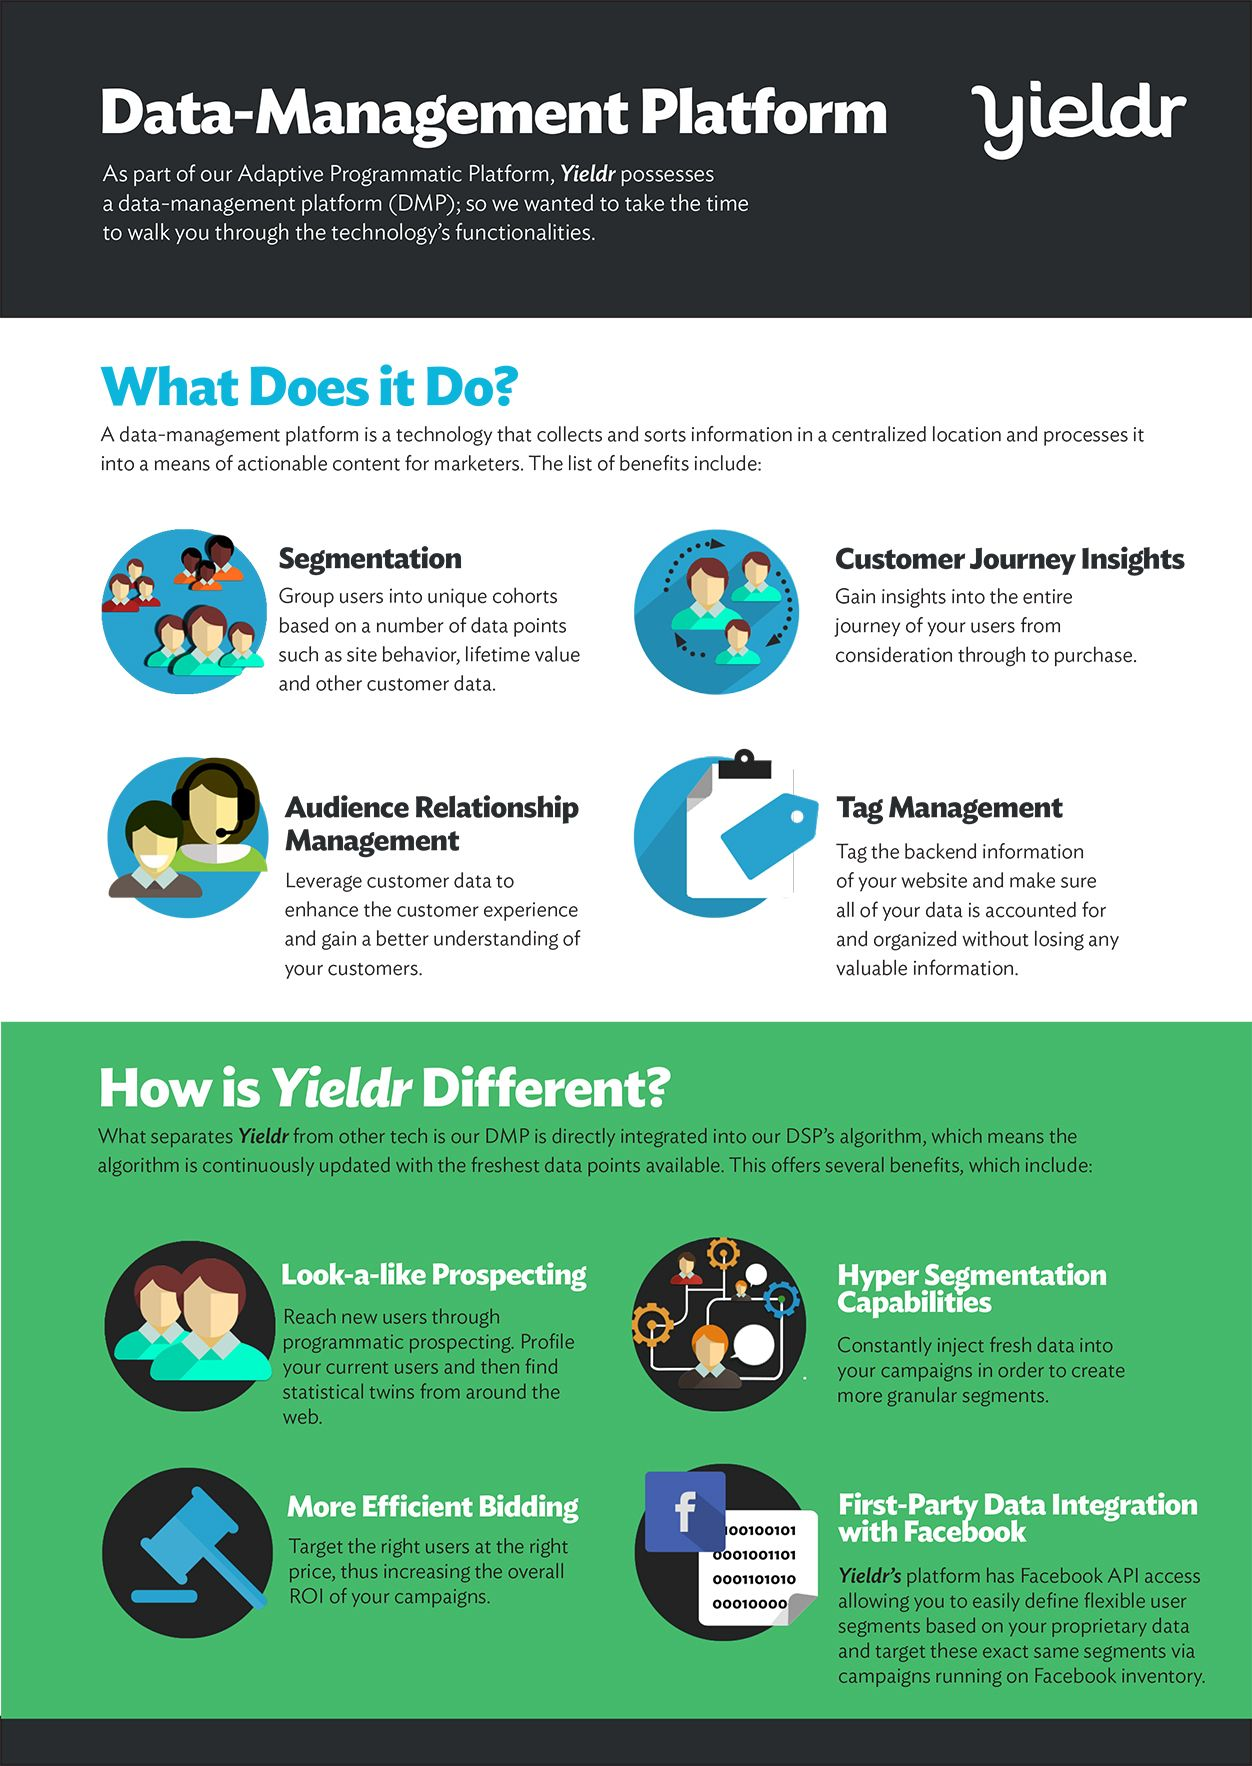 data management platform examples Data-Management Platform Infographic | Yieldr | Product One Pagers ...